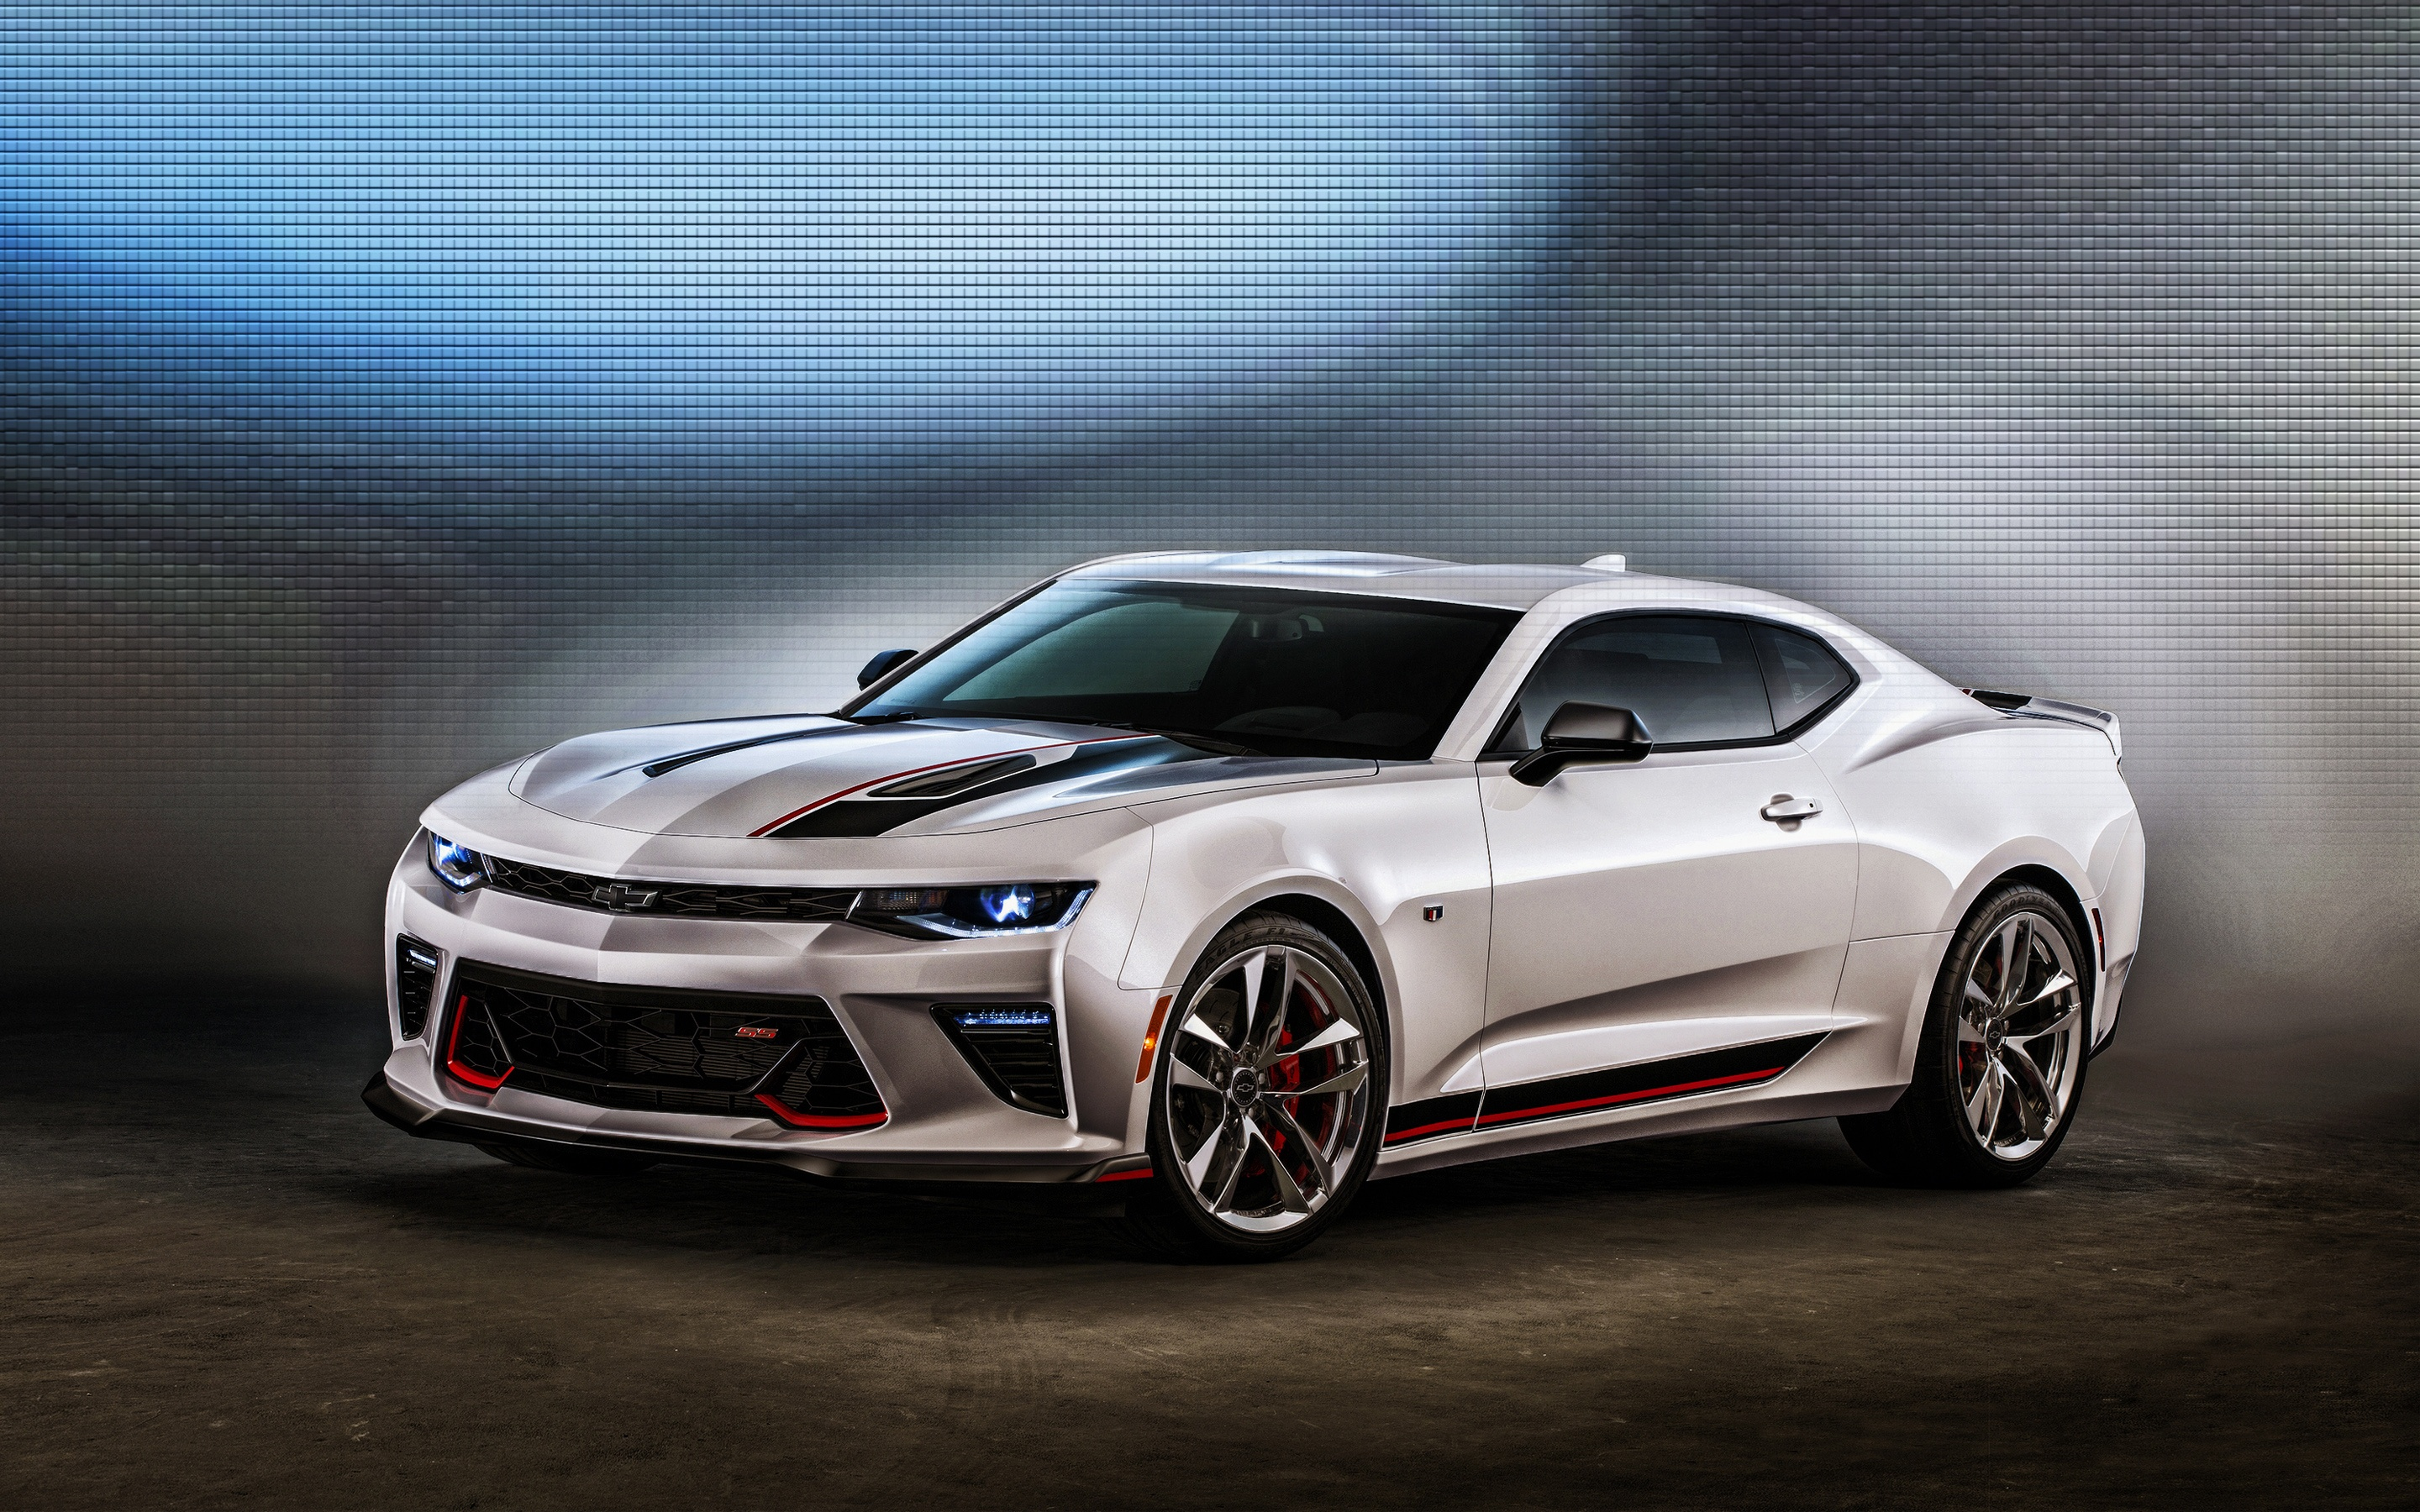 2016 chevrolet camaro ss concept wallpapers in jpg format for free